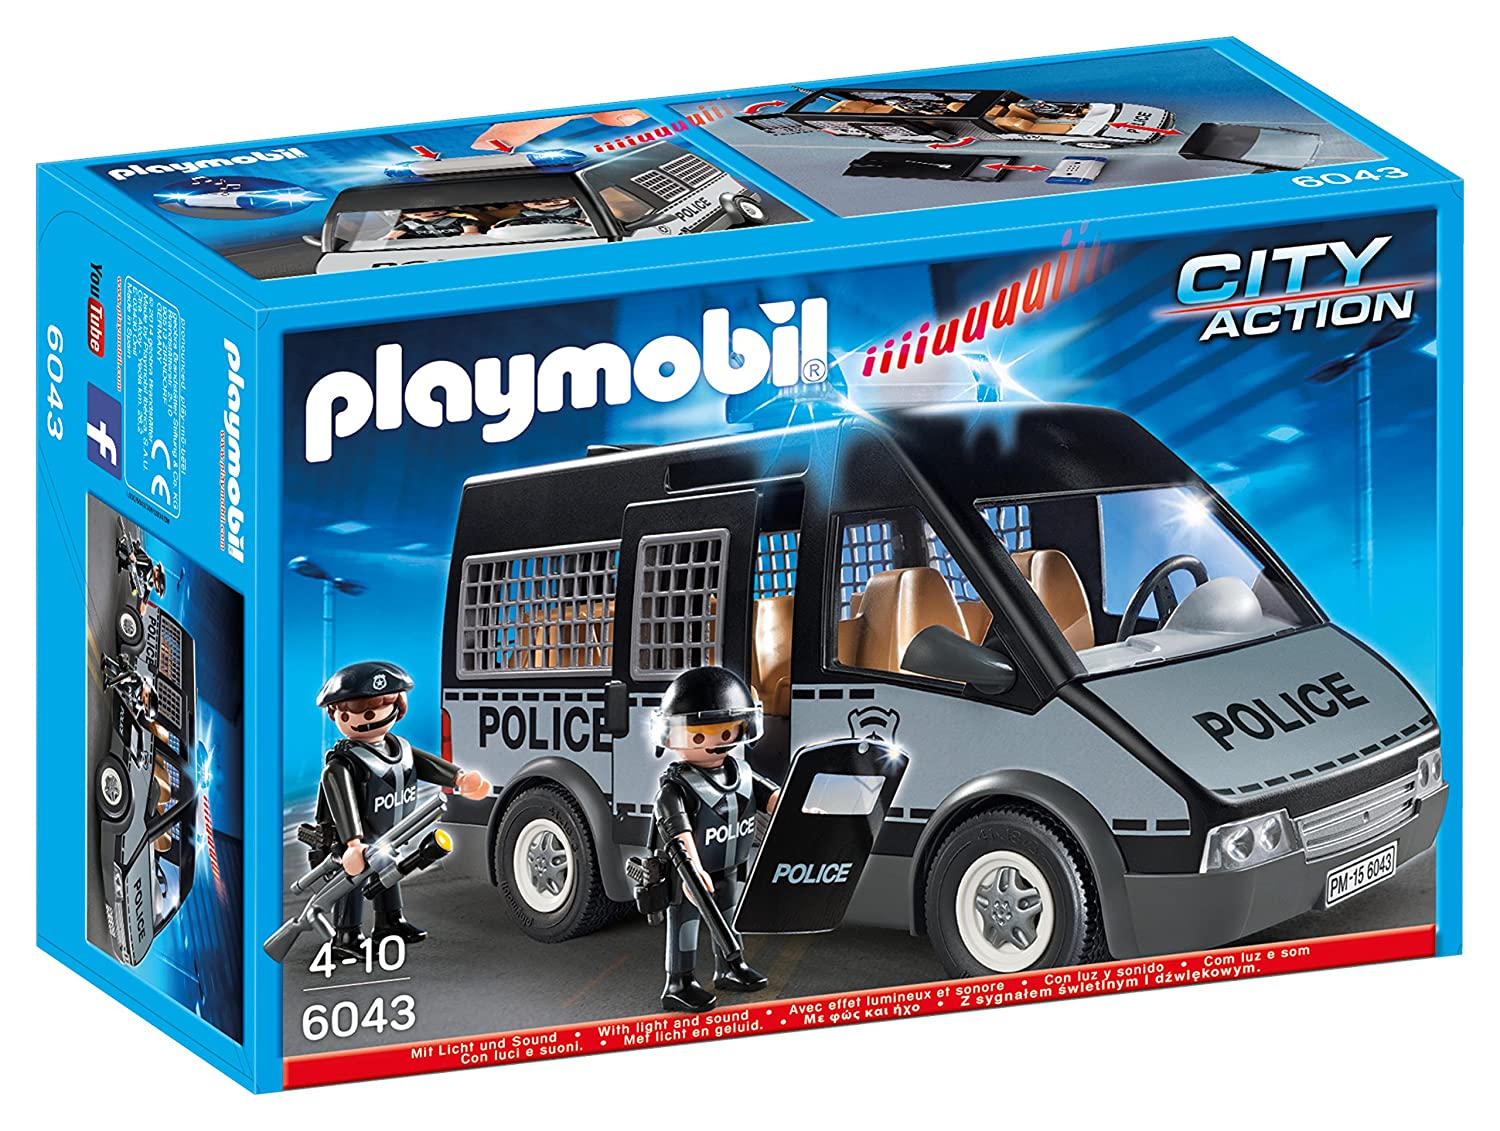 amazoncom playmobil police van with lights sound toys games - Playmobile Police